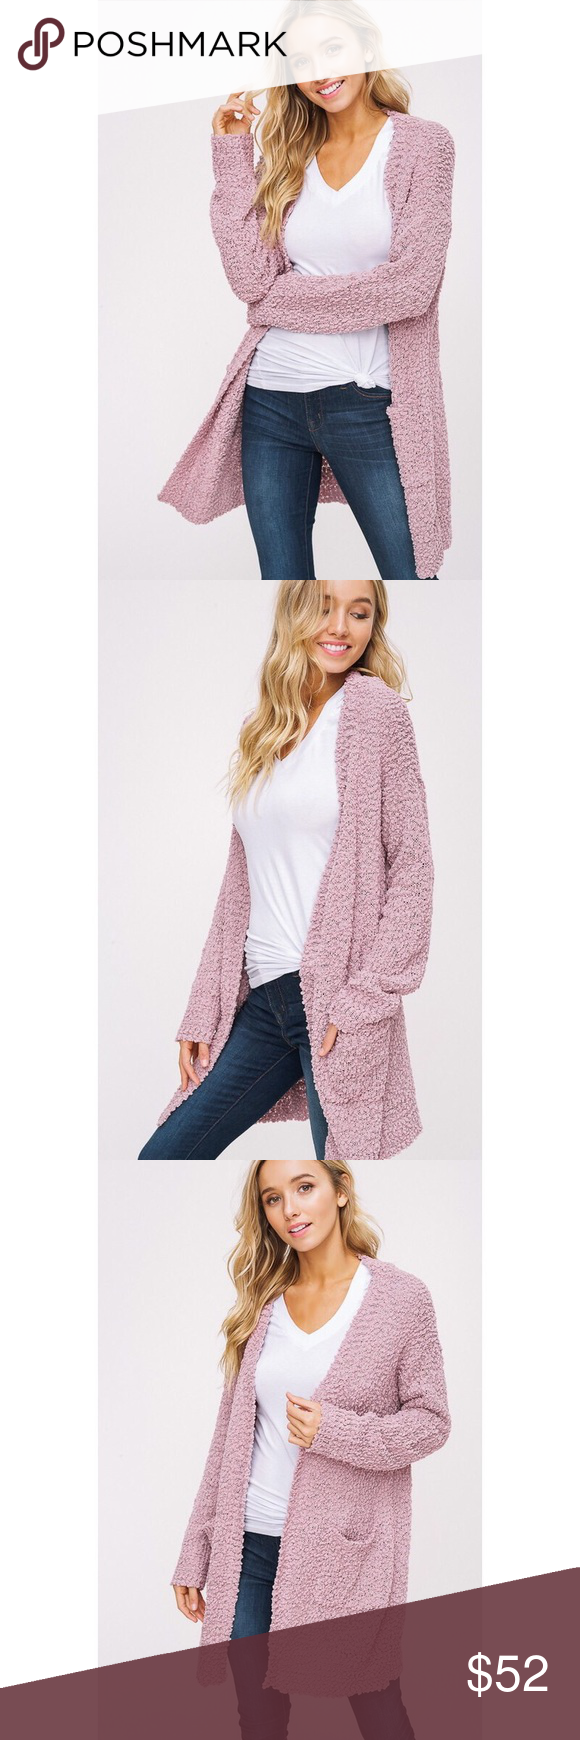 >>LAST 2<< Polly Popcorn Chunky Cardigan - Mauve You'll never want to take off this dream of a cardigan! Features a soft popcorn texture, drop shoulder with long sleeves, 2 front pockets. 100% Acrylic. ALSO AVAILABLE IN IVORY AND MOCHA. likeNarly Sweaters Cardigans